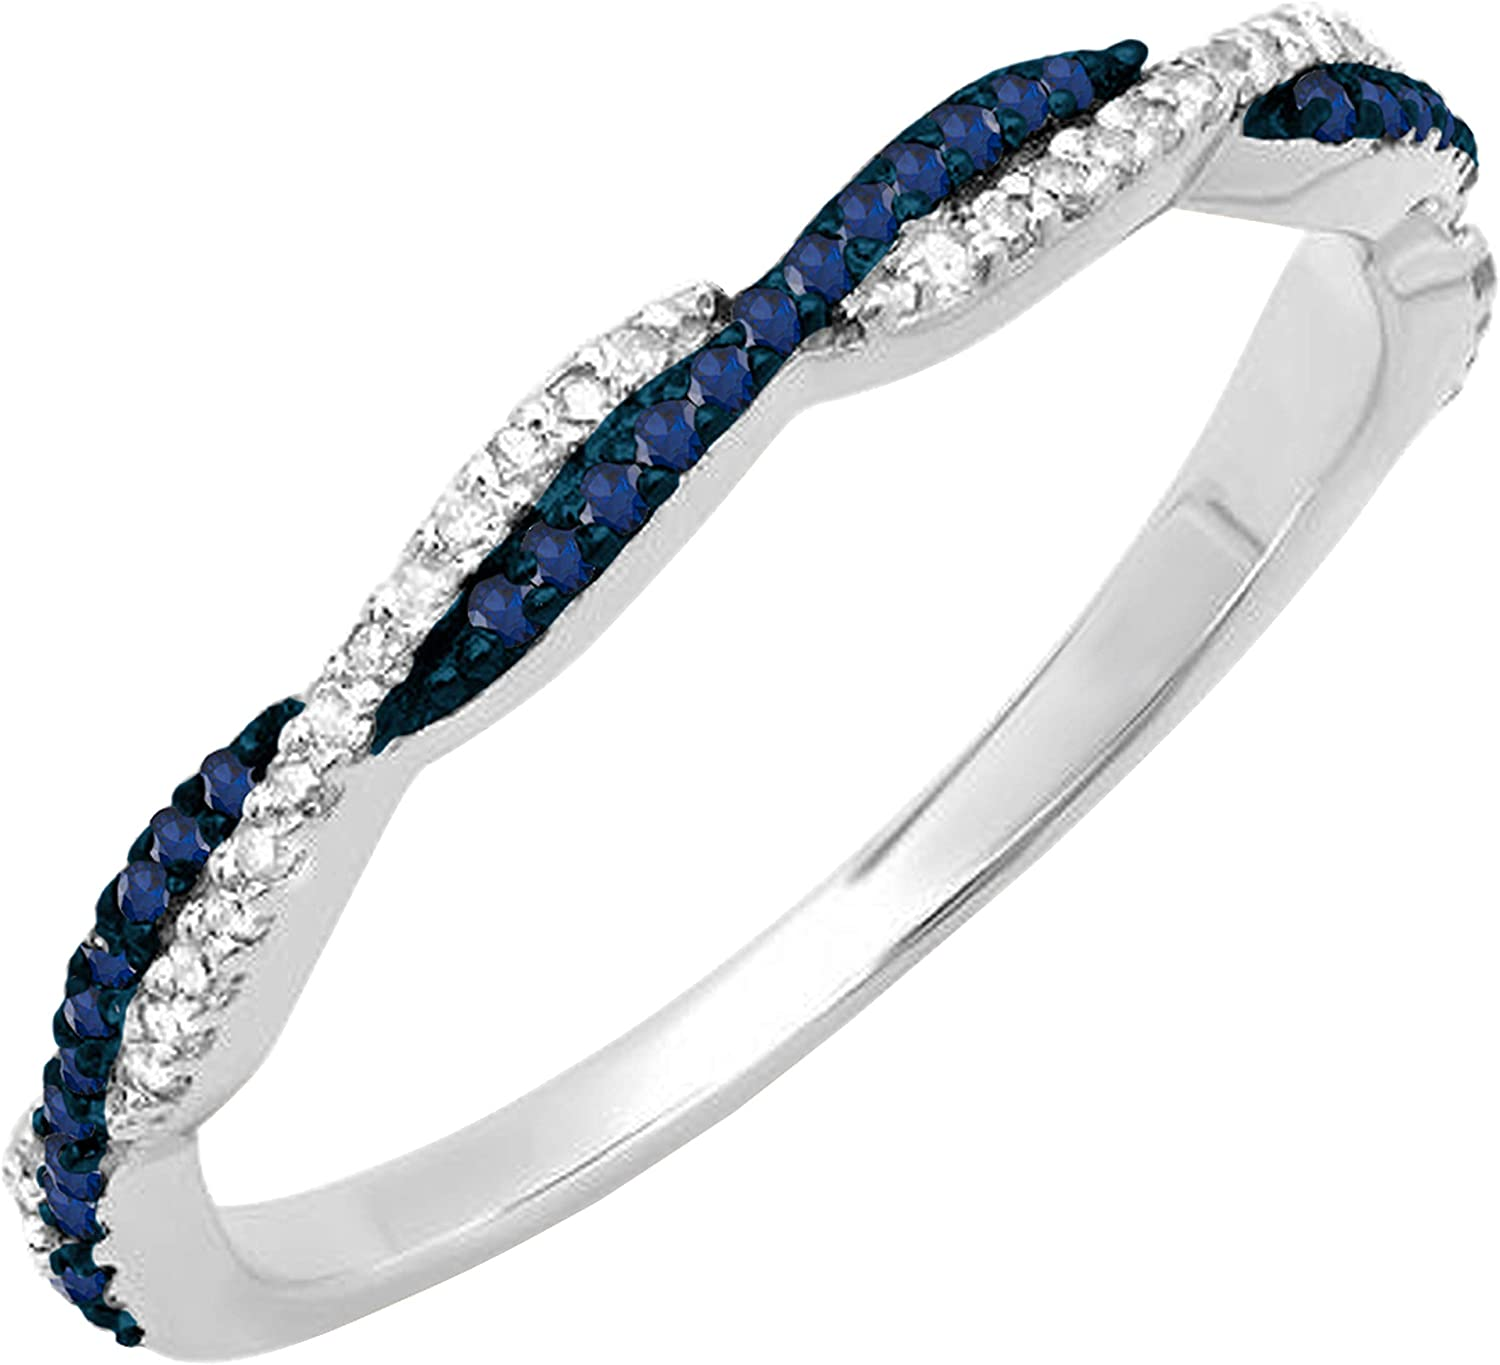 Dazzlingrock Collection Round Blue Sapphire & White Diamond Ladies Anniversary Swirl Stackable Wedding Band, Available in Metal 10K/14K/18K Gold